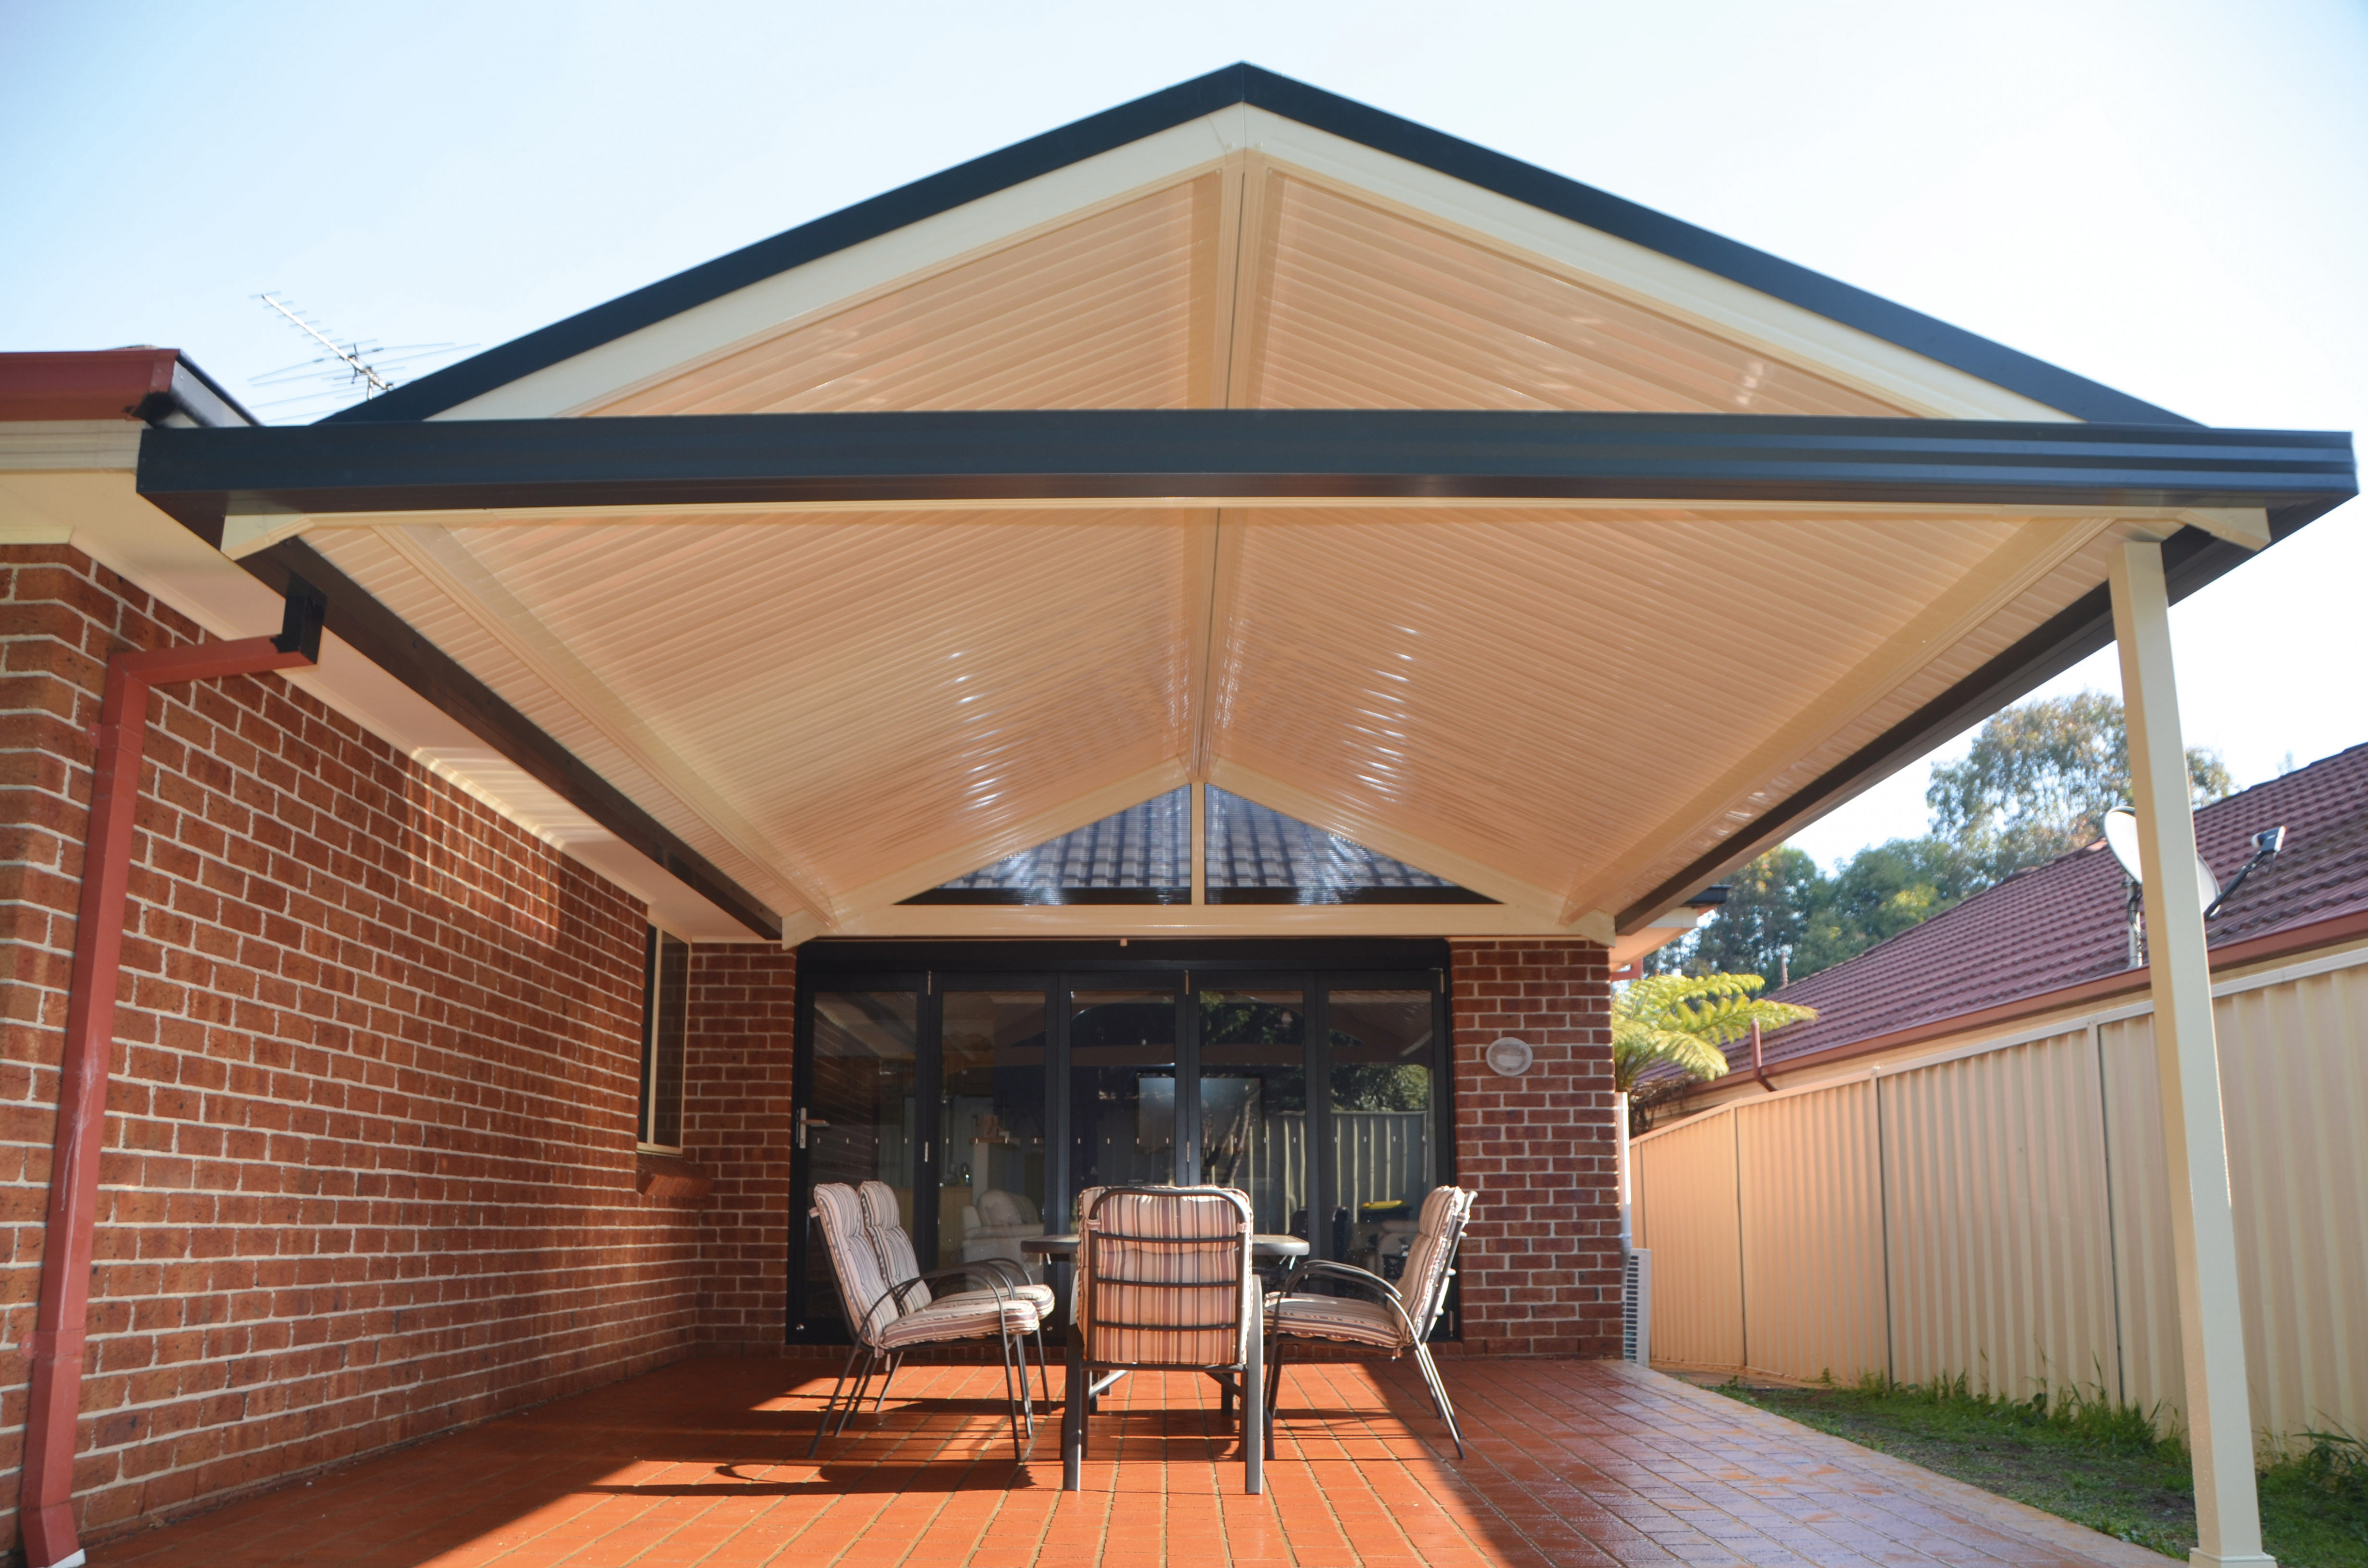 12 Dutch Steel Awning Gazebo, 12 Best Images About ..